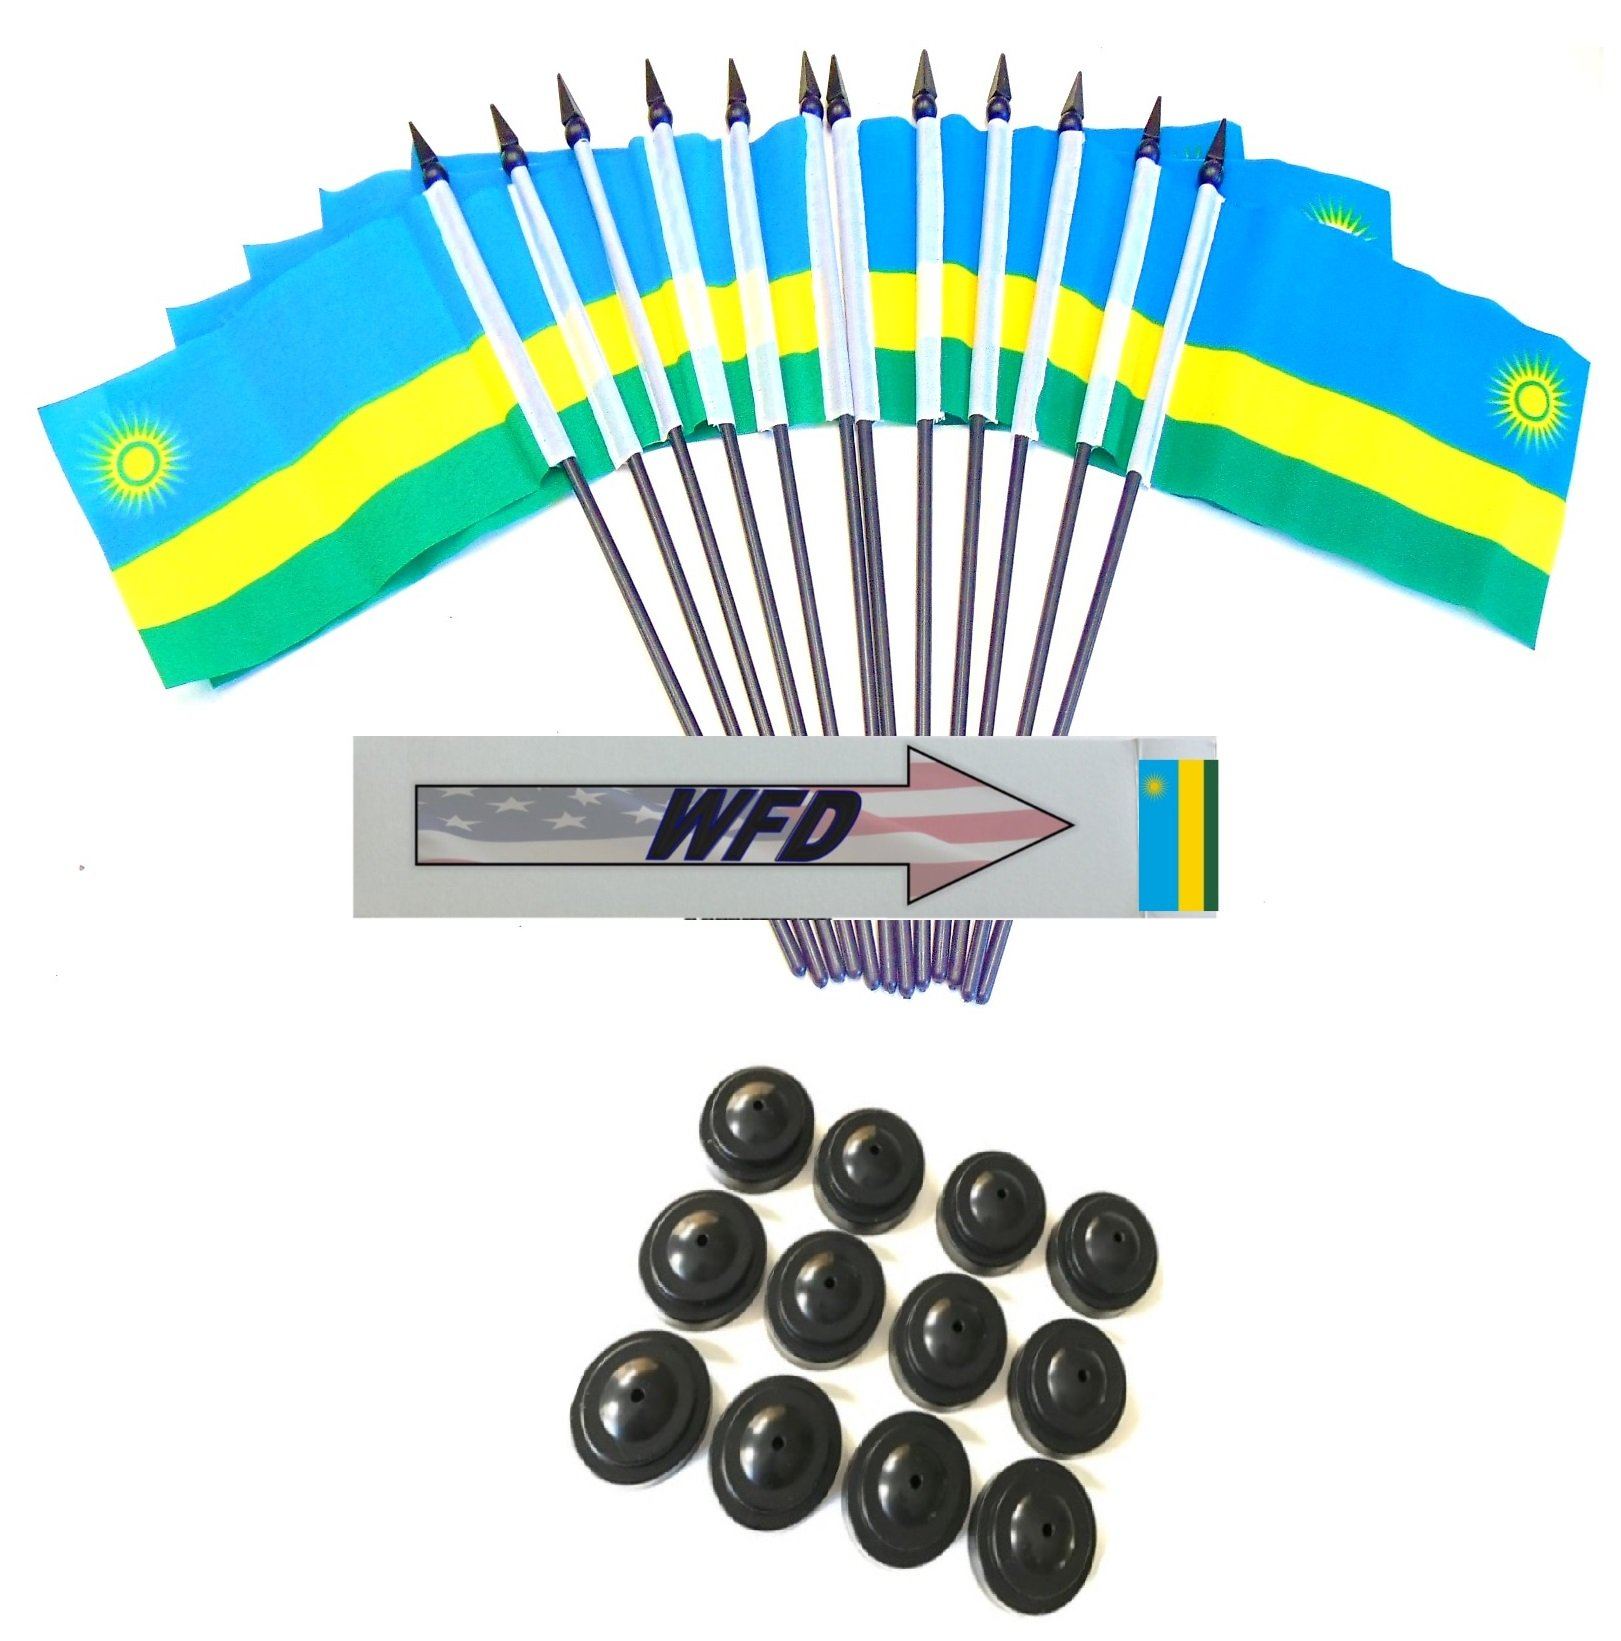 Pack of 12 4''x6'' Rwanda Polyester Miniature Office Desk & Little Table Flags, 1 Dozen 4''x 6'' Rwandan Small Mini Handheld Waving Stick Flags with 12 Flag Bases (Flags with Stands) by World Flags Direct (Image #1)